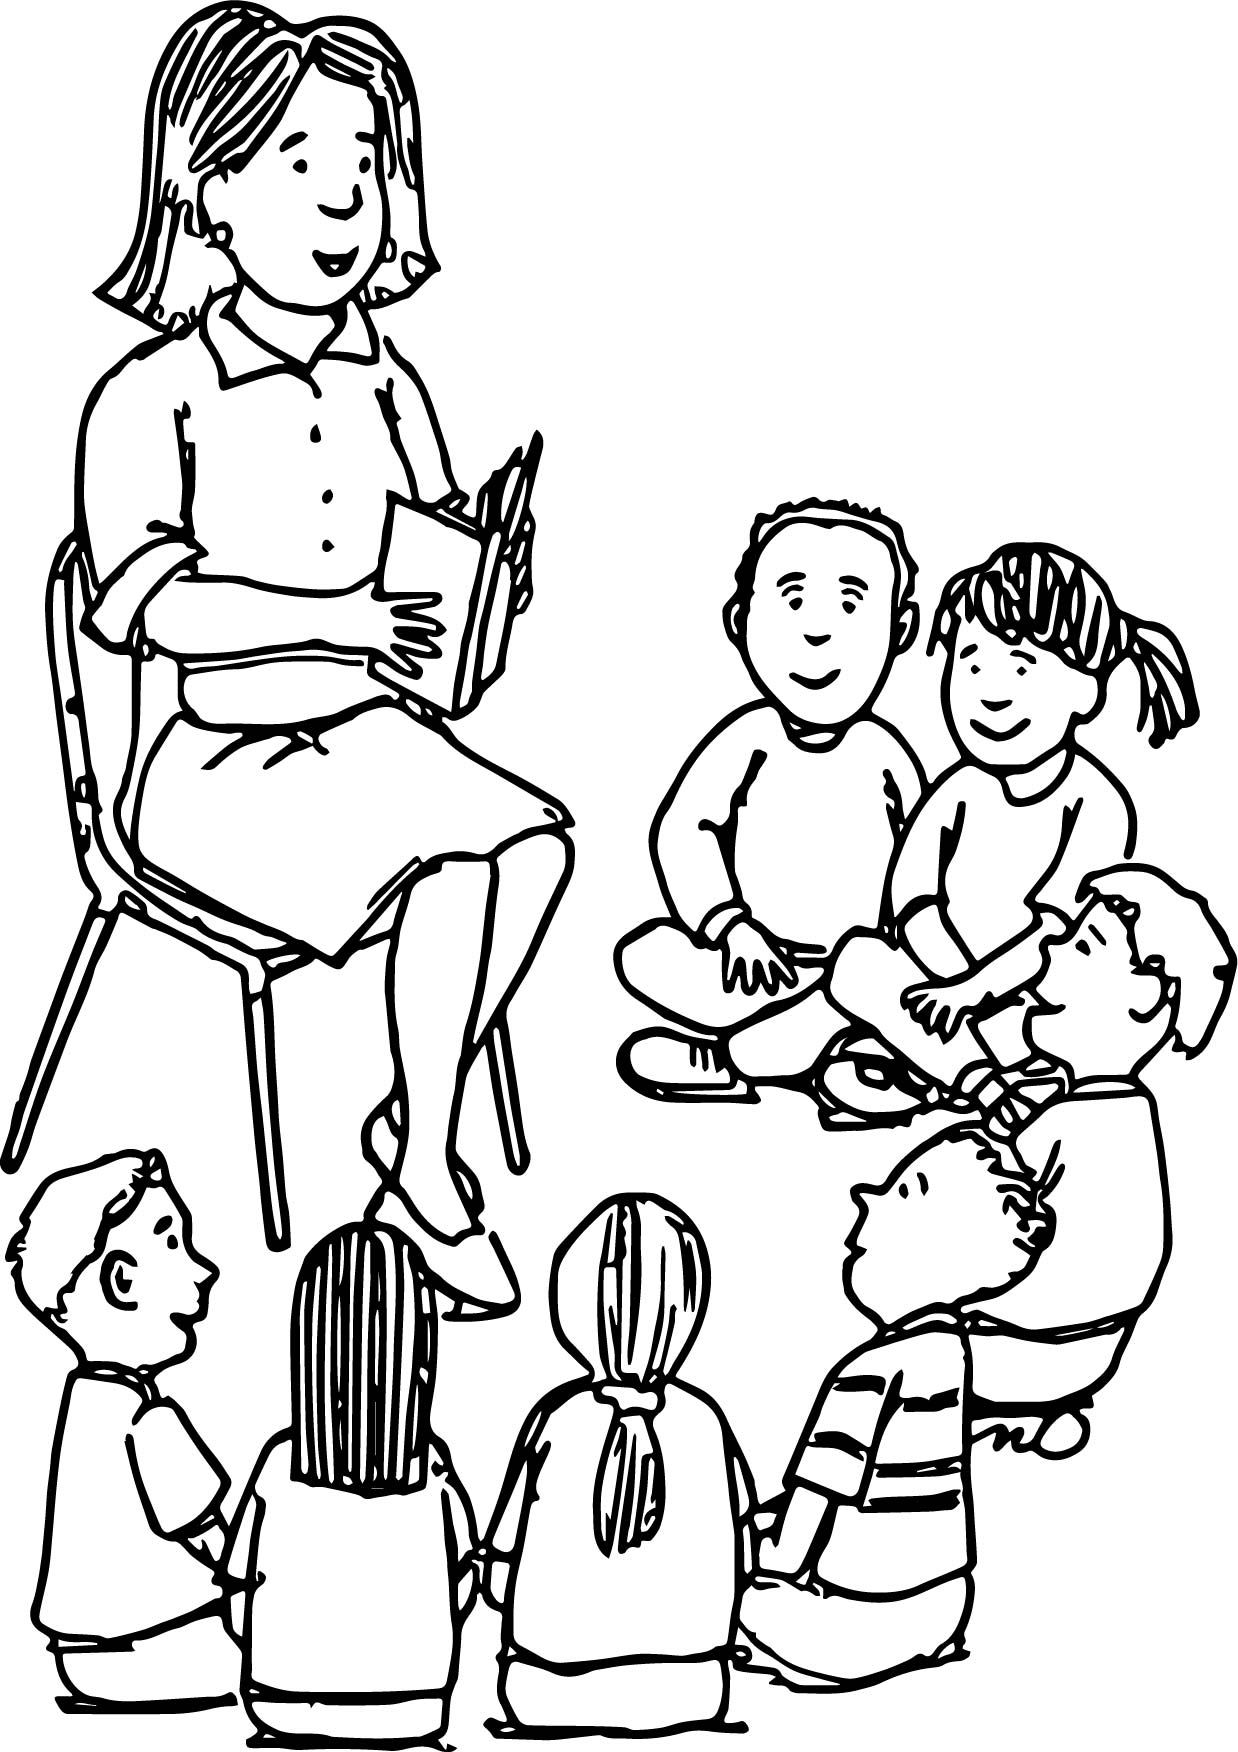 Teacher And Student Coloring Pages Coloring Pages Coloring Pages Students